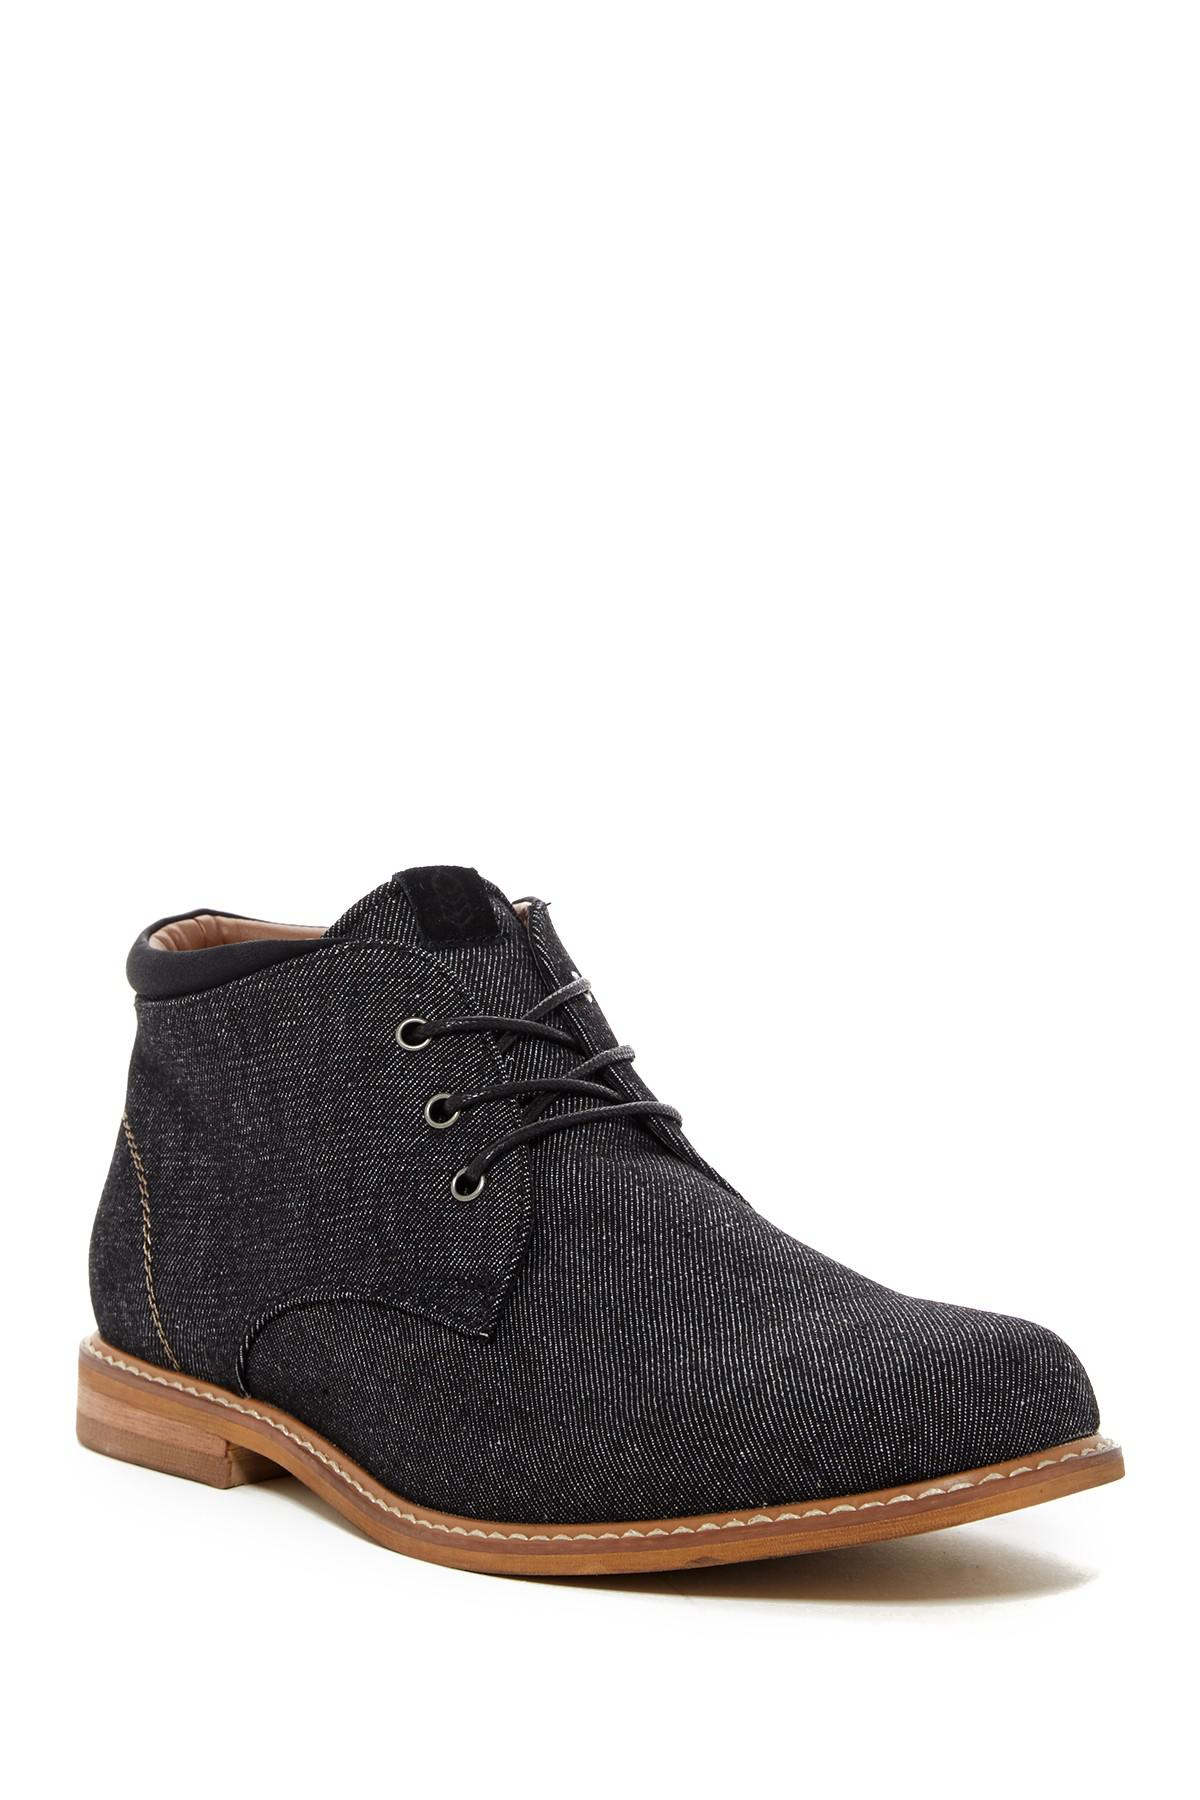 Lyst Call It Spring Stalle Chukka Boot In Black For Men